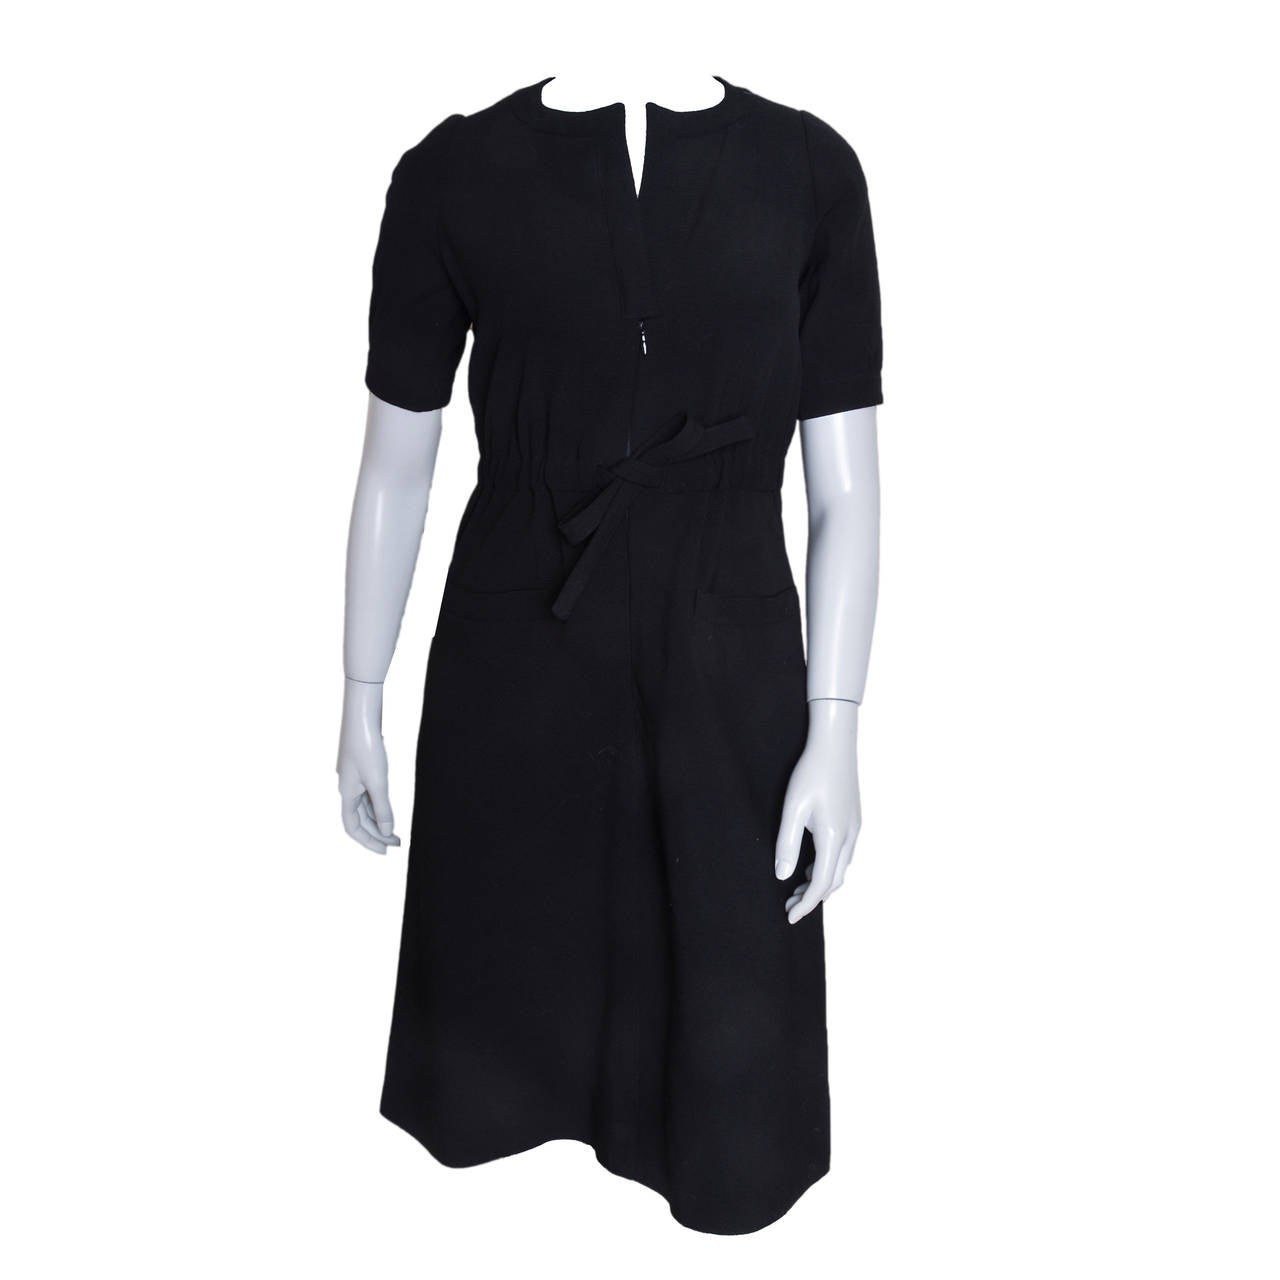 Courreges Hyperbole Classic Black Dress